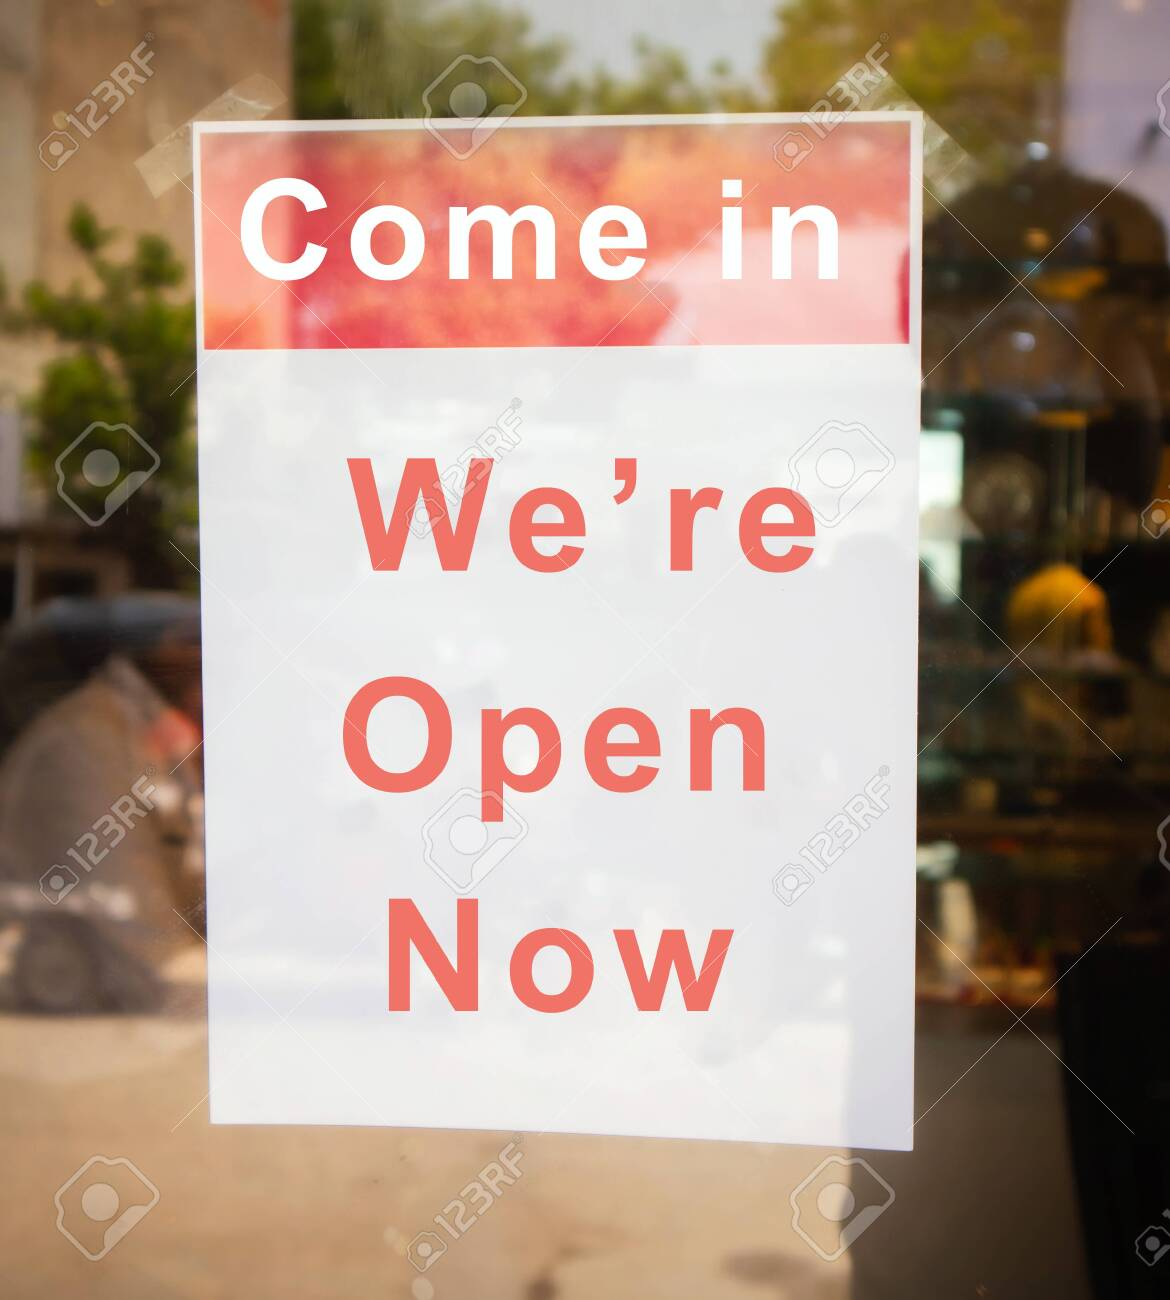 Come In We Are Open Now Signage Board In Front Of Businesses Stock Photo Picture And Royalty Free Image Image 148163284